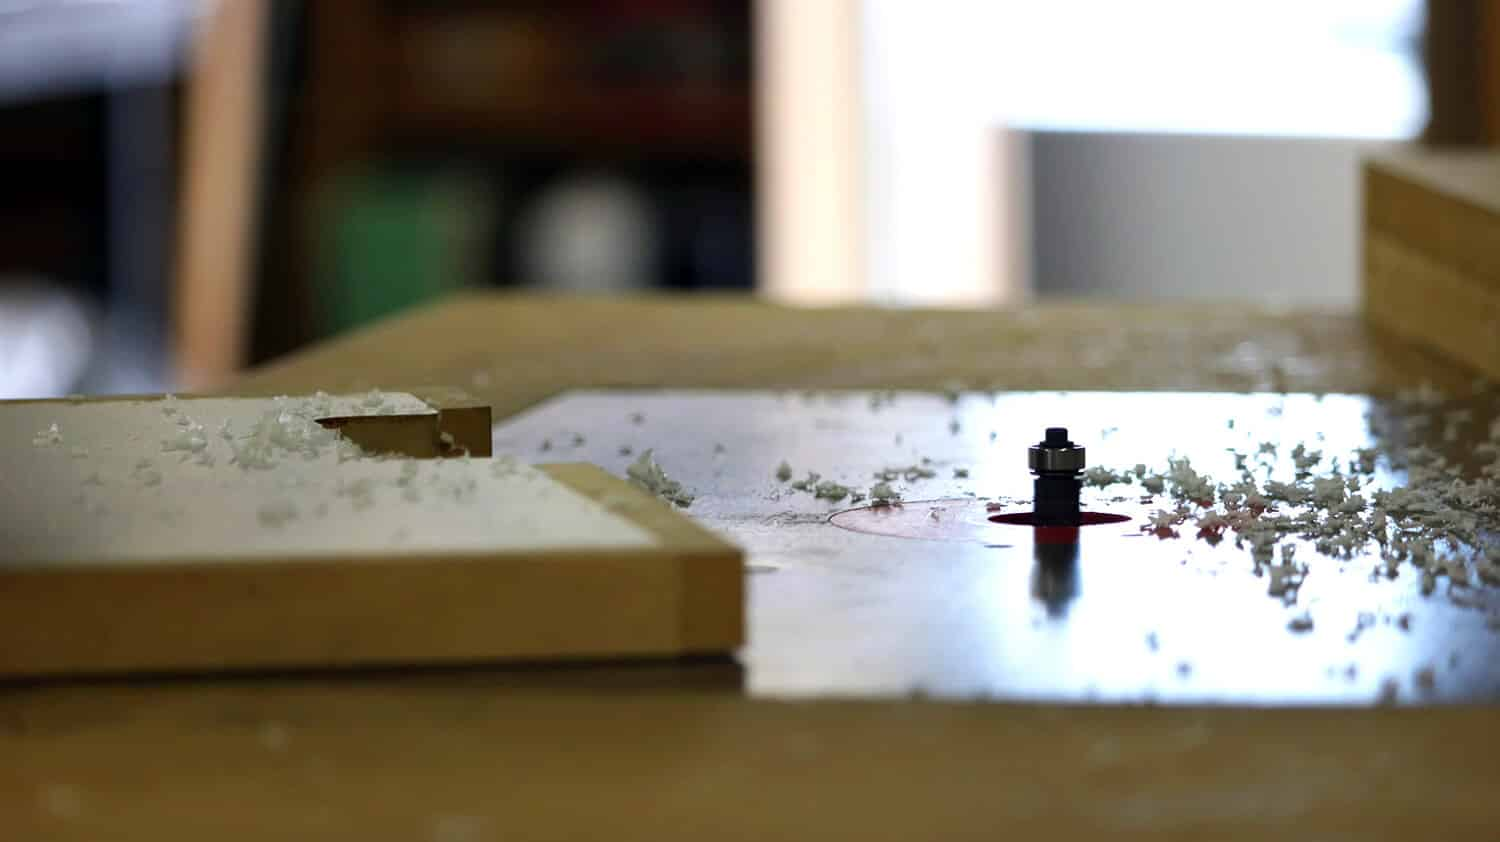 How to Use a Router for Woodworking - Router Table